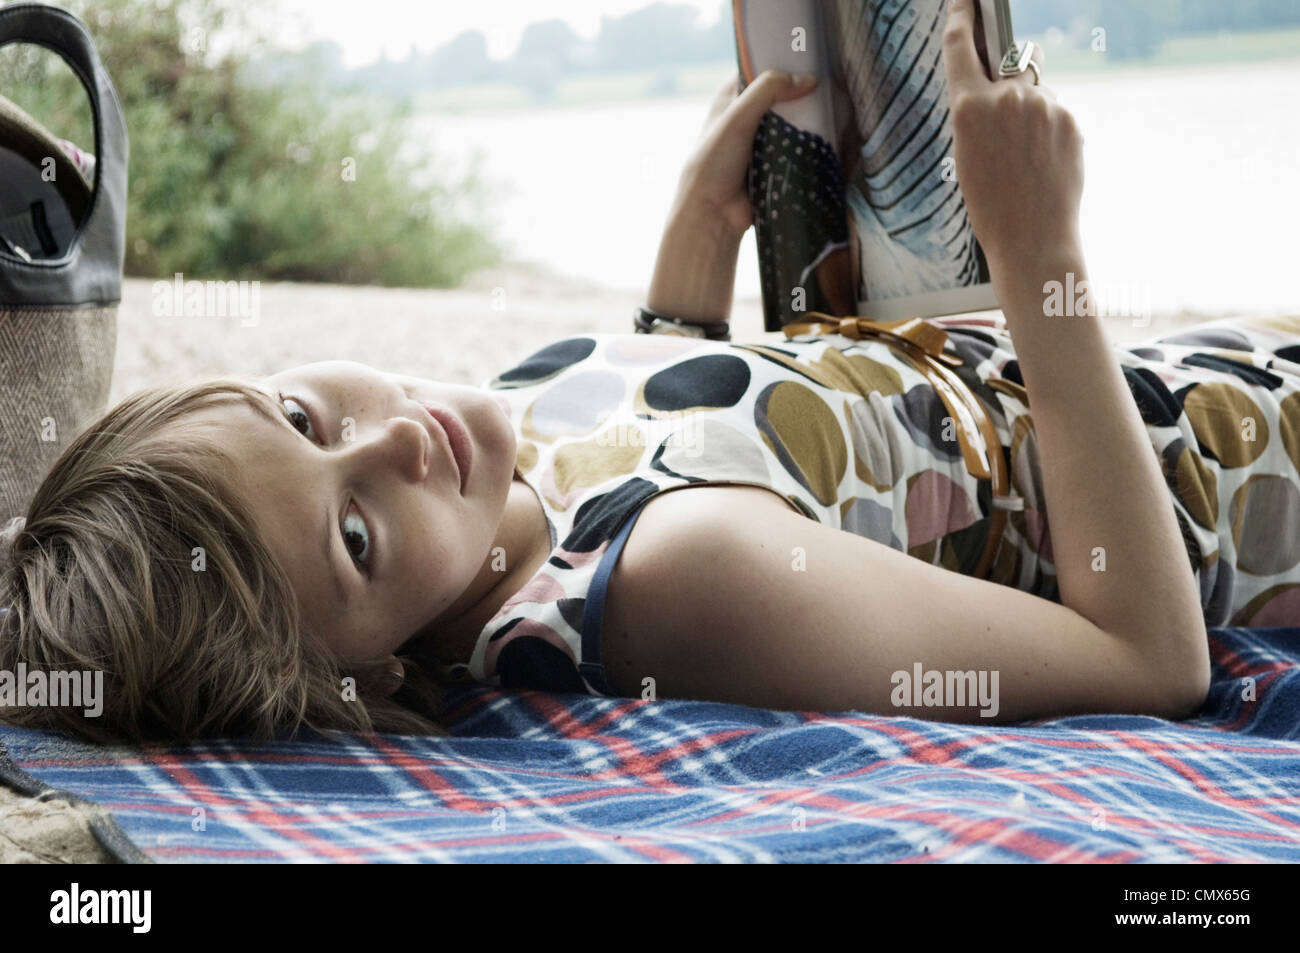 Germany, Rheinland, Young woman lying on blanket and reading book - Stock Image